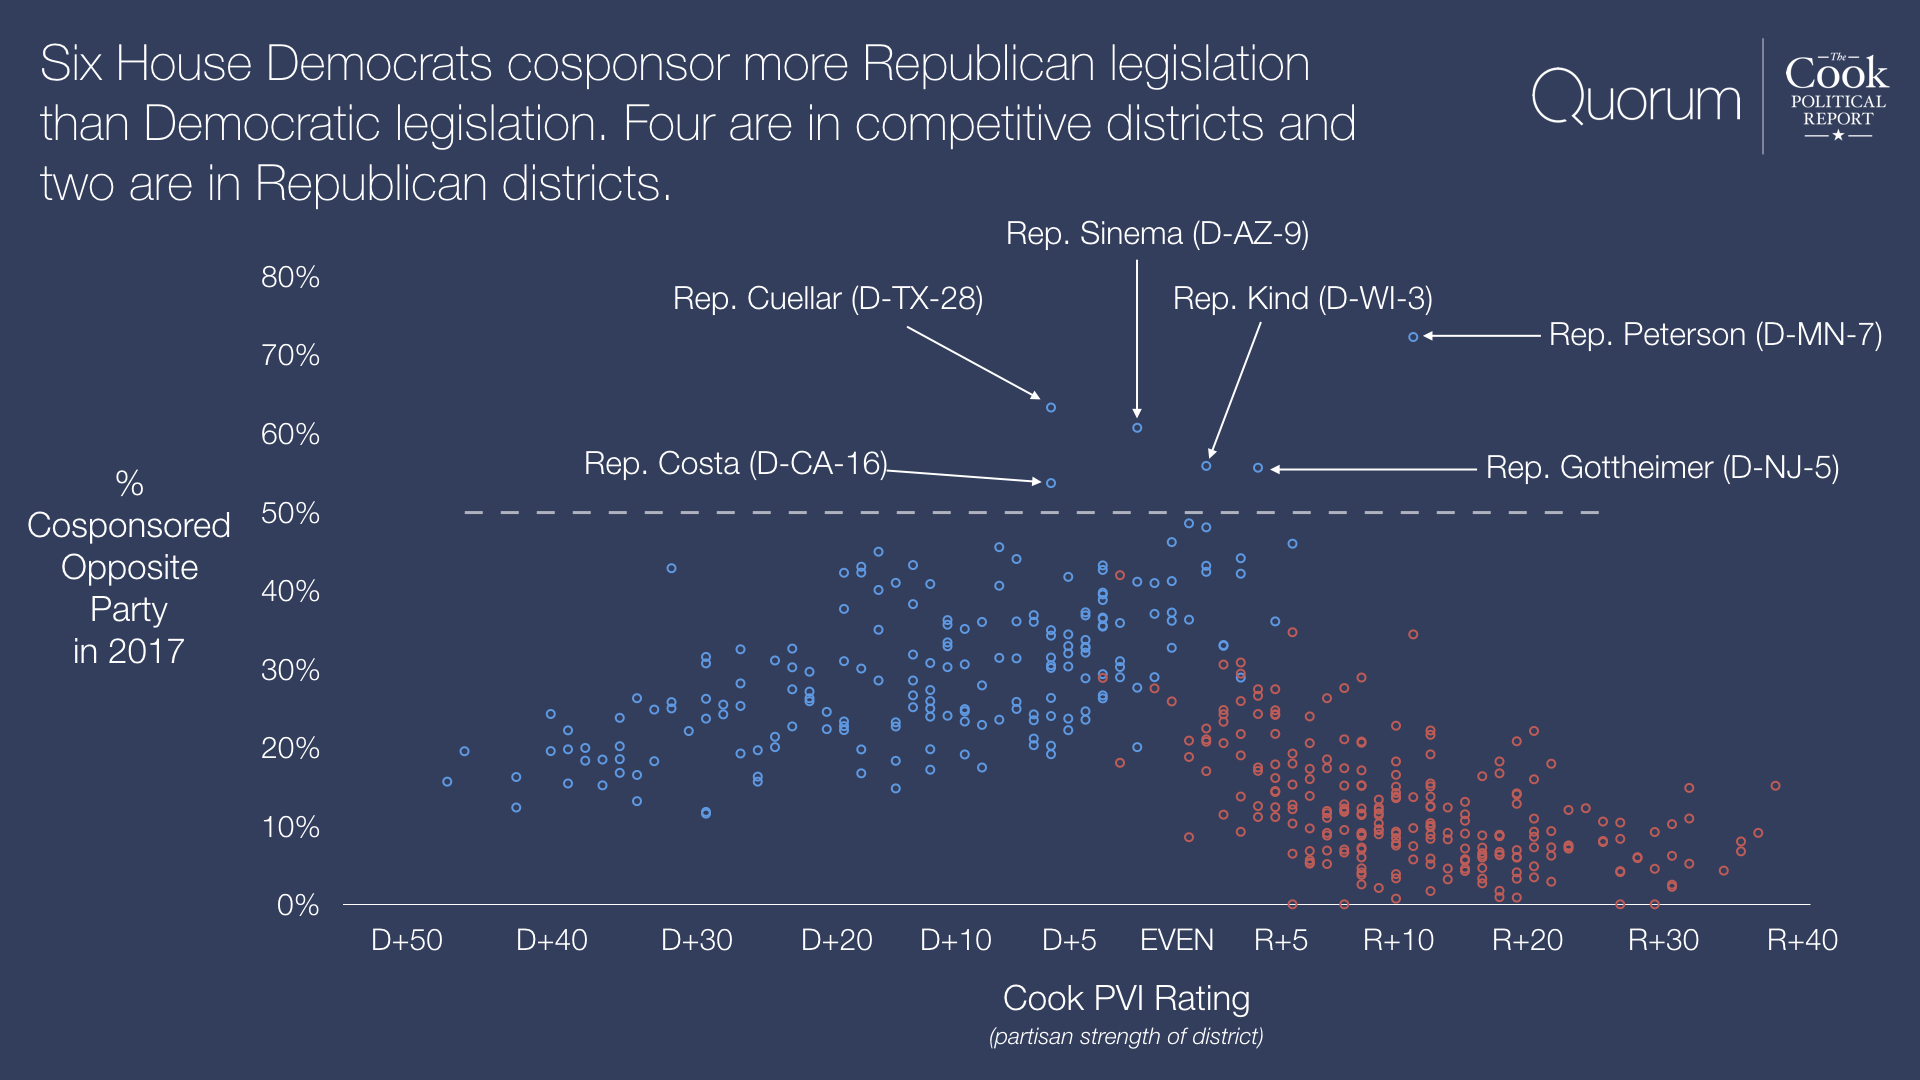 Six House Democrats cosponsor more Republican legislation than Democratic legislation. Four are in competitive districts and two are in Republican districts.